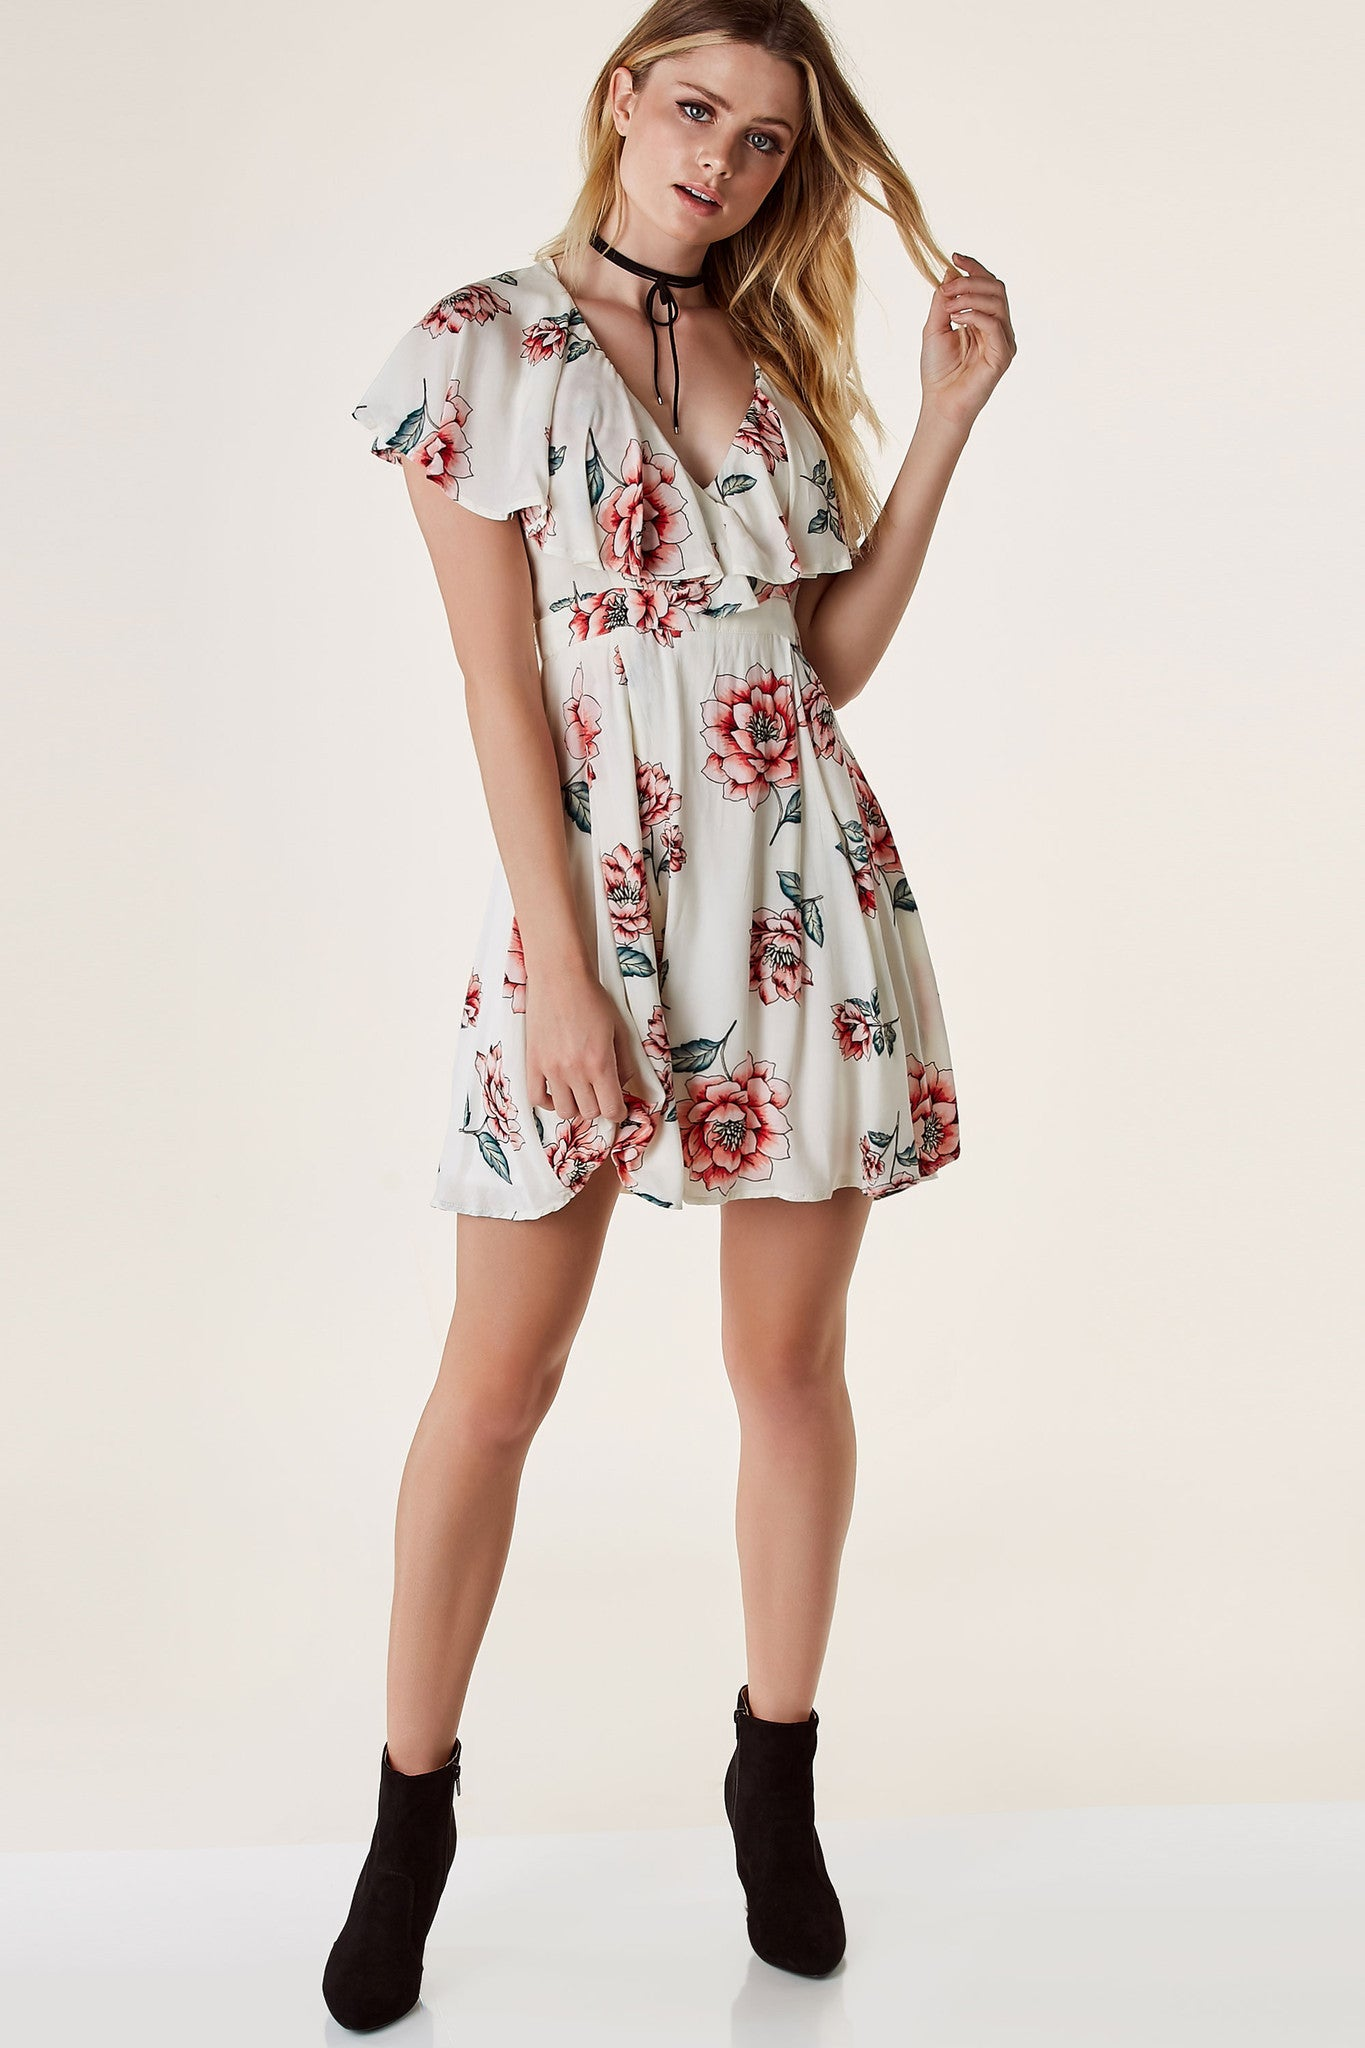 Flirty overlap V-neck dress with ruffle tier design and cap sleeves. A-line hem with cut out in back with ties and hidden zip closure.